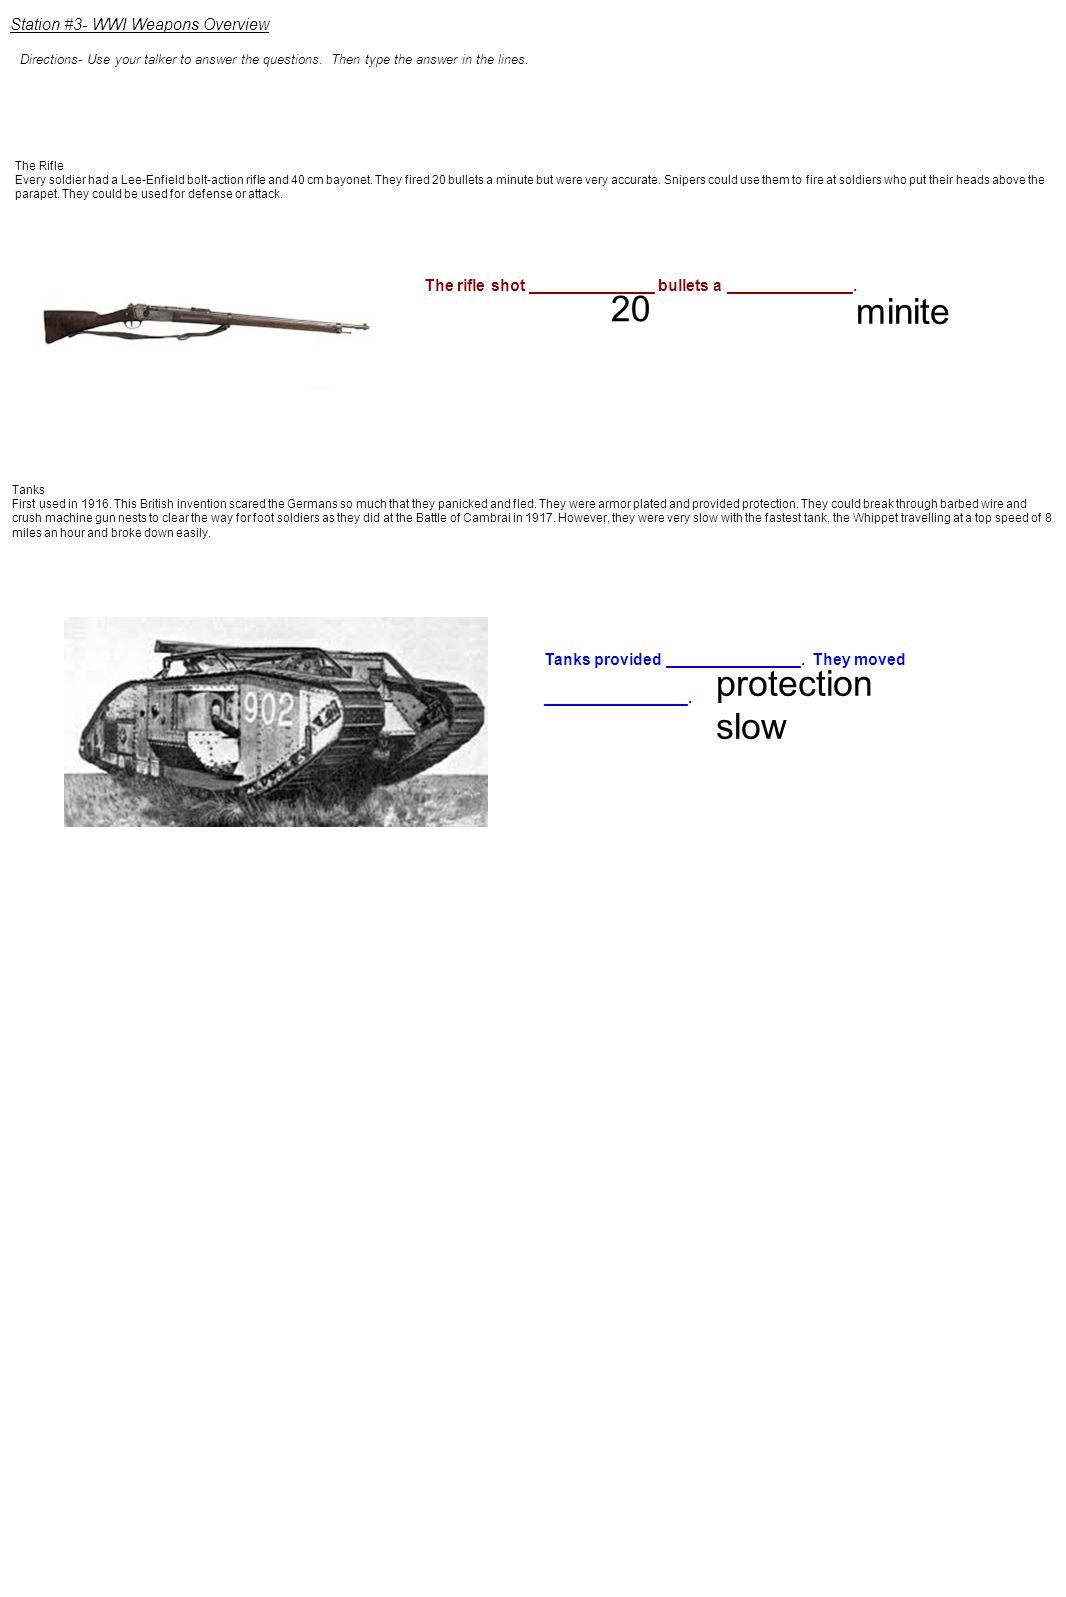 Station #3- WWI Weapons Overview The Rifle Every soldier had a Lee-Enfield bolt-action rifle and 40 cm bayonet.